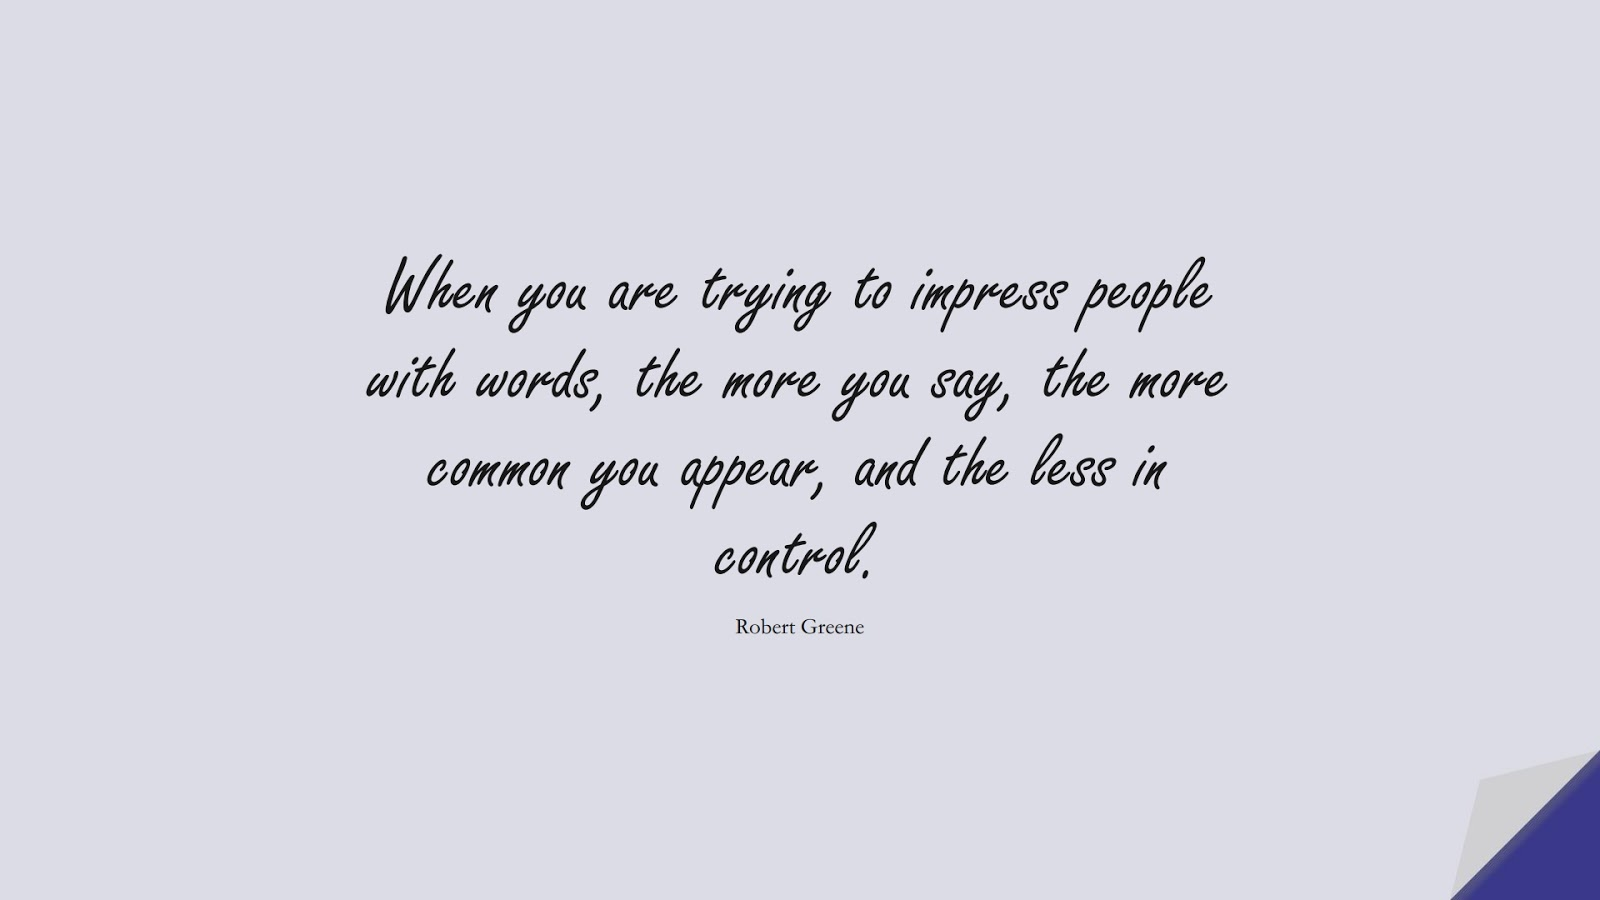 When you are trying to impress people with words, the more you say, the more common you appear, and the less in control. (Robert Greene);  #CalmQuotes